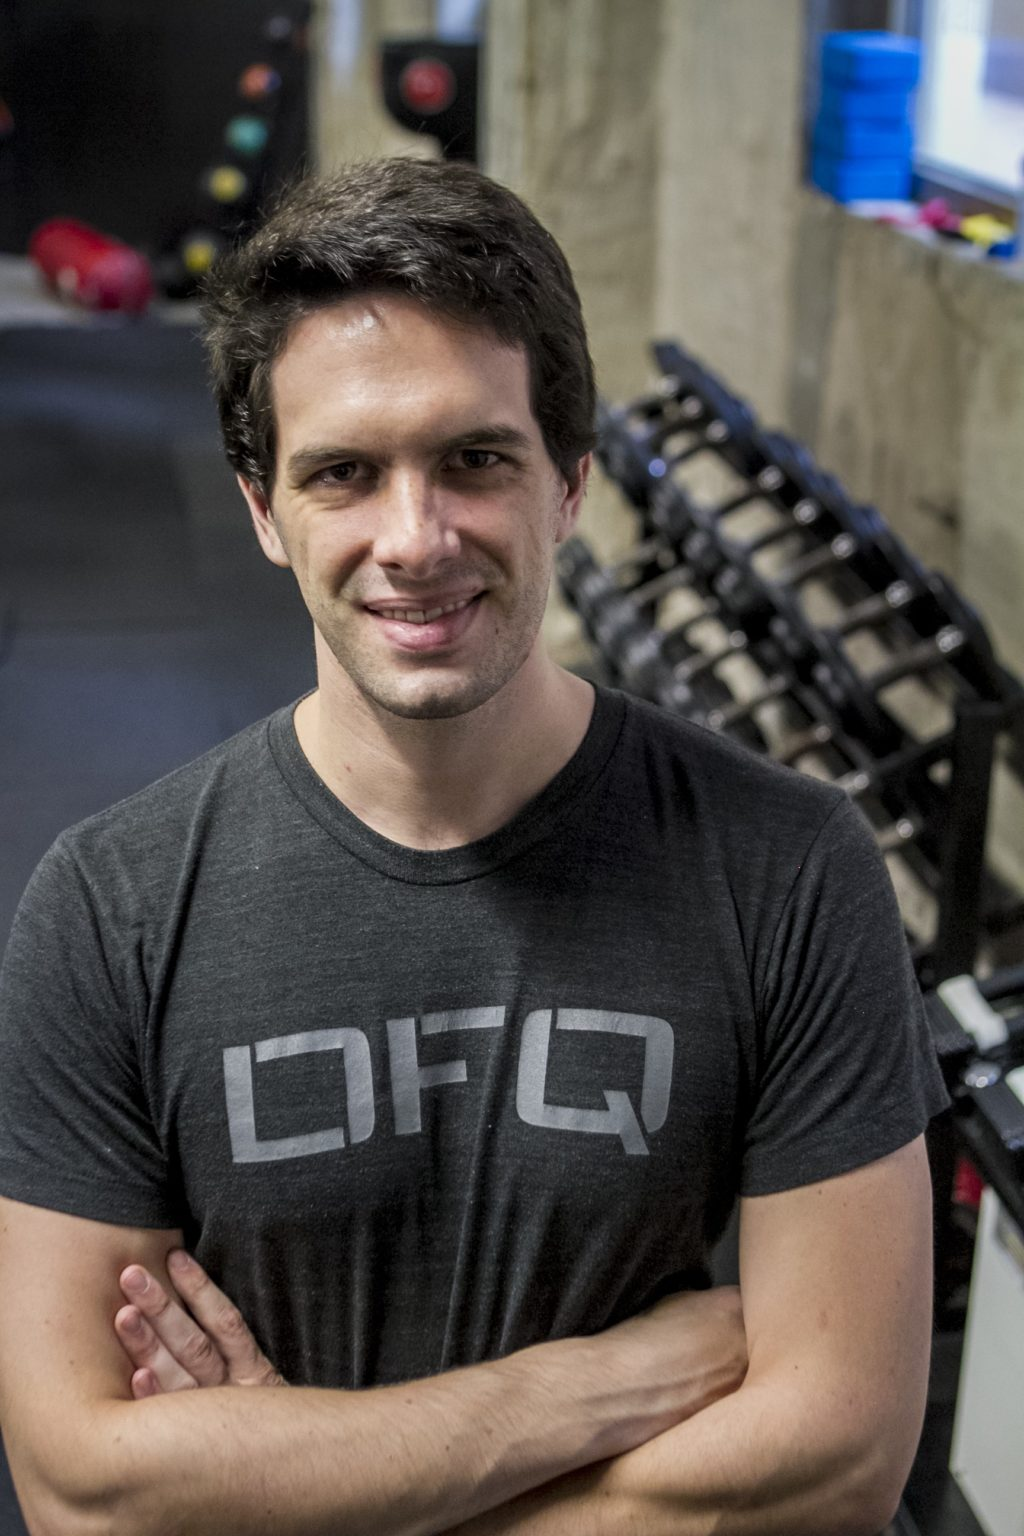 Personal Trainer Houston, Texas - Scott Southworth